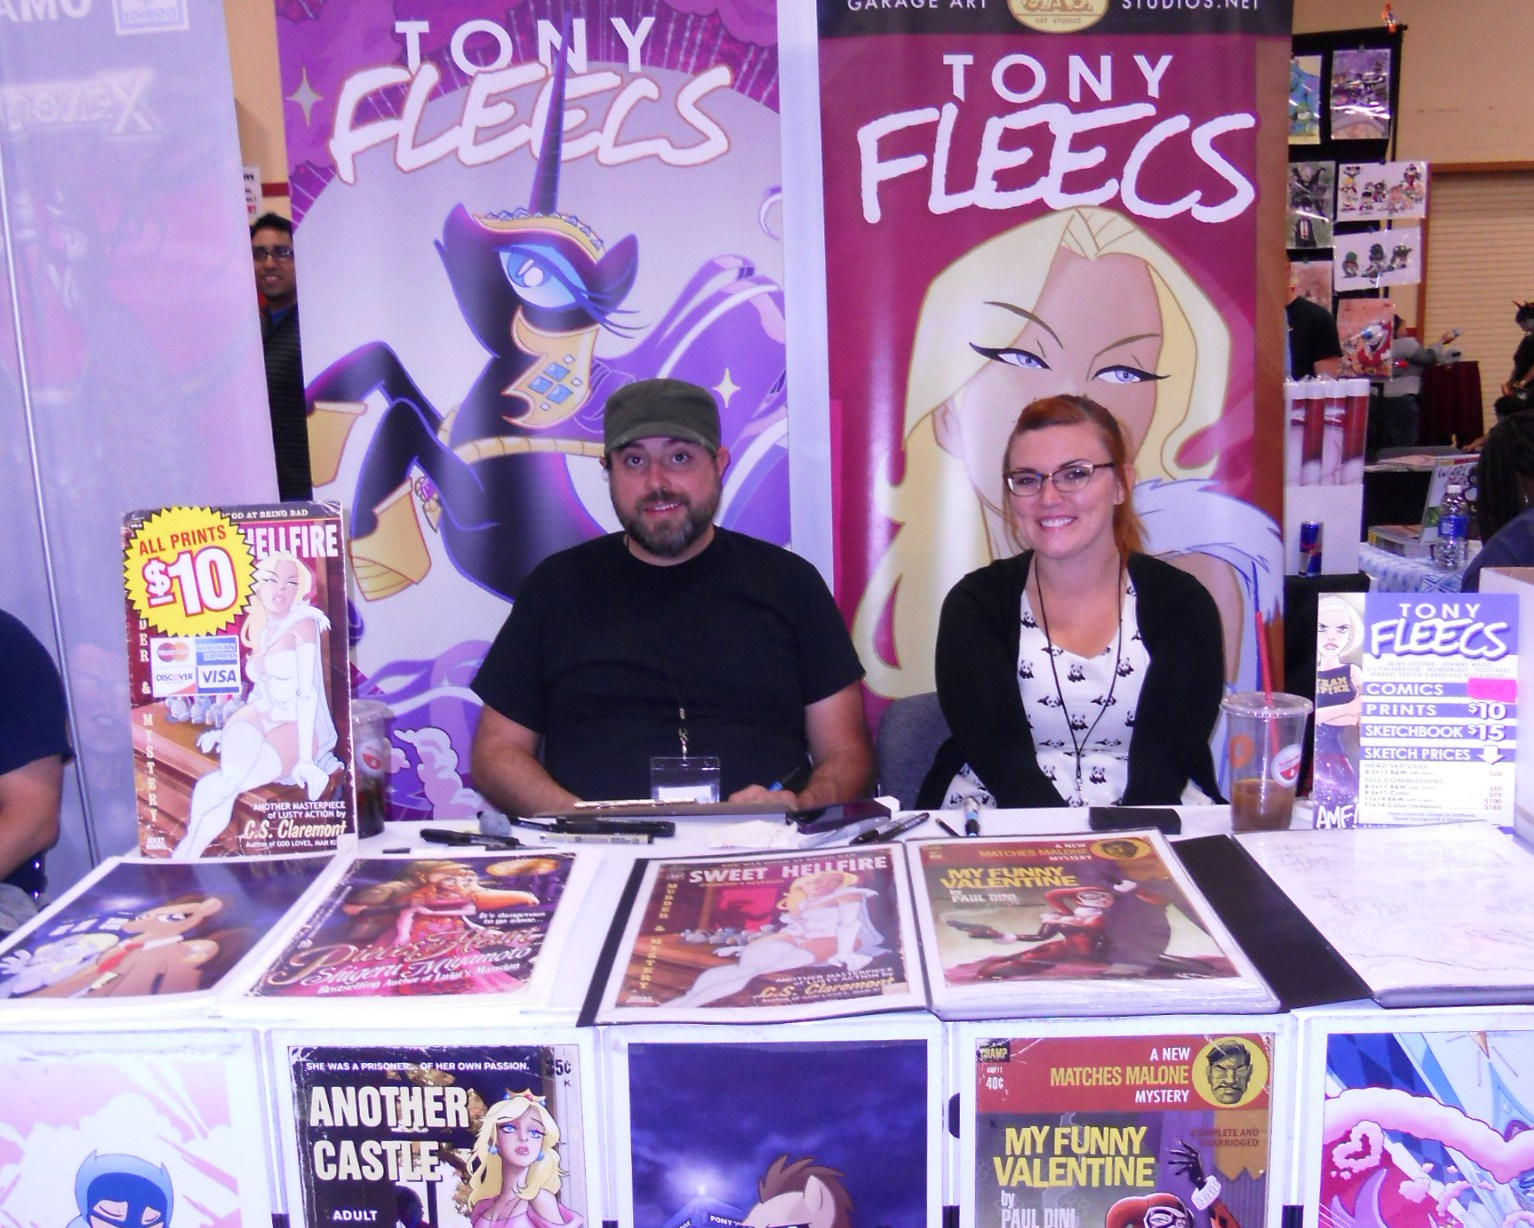 My Little Pony's Tony Fleecs